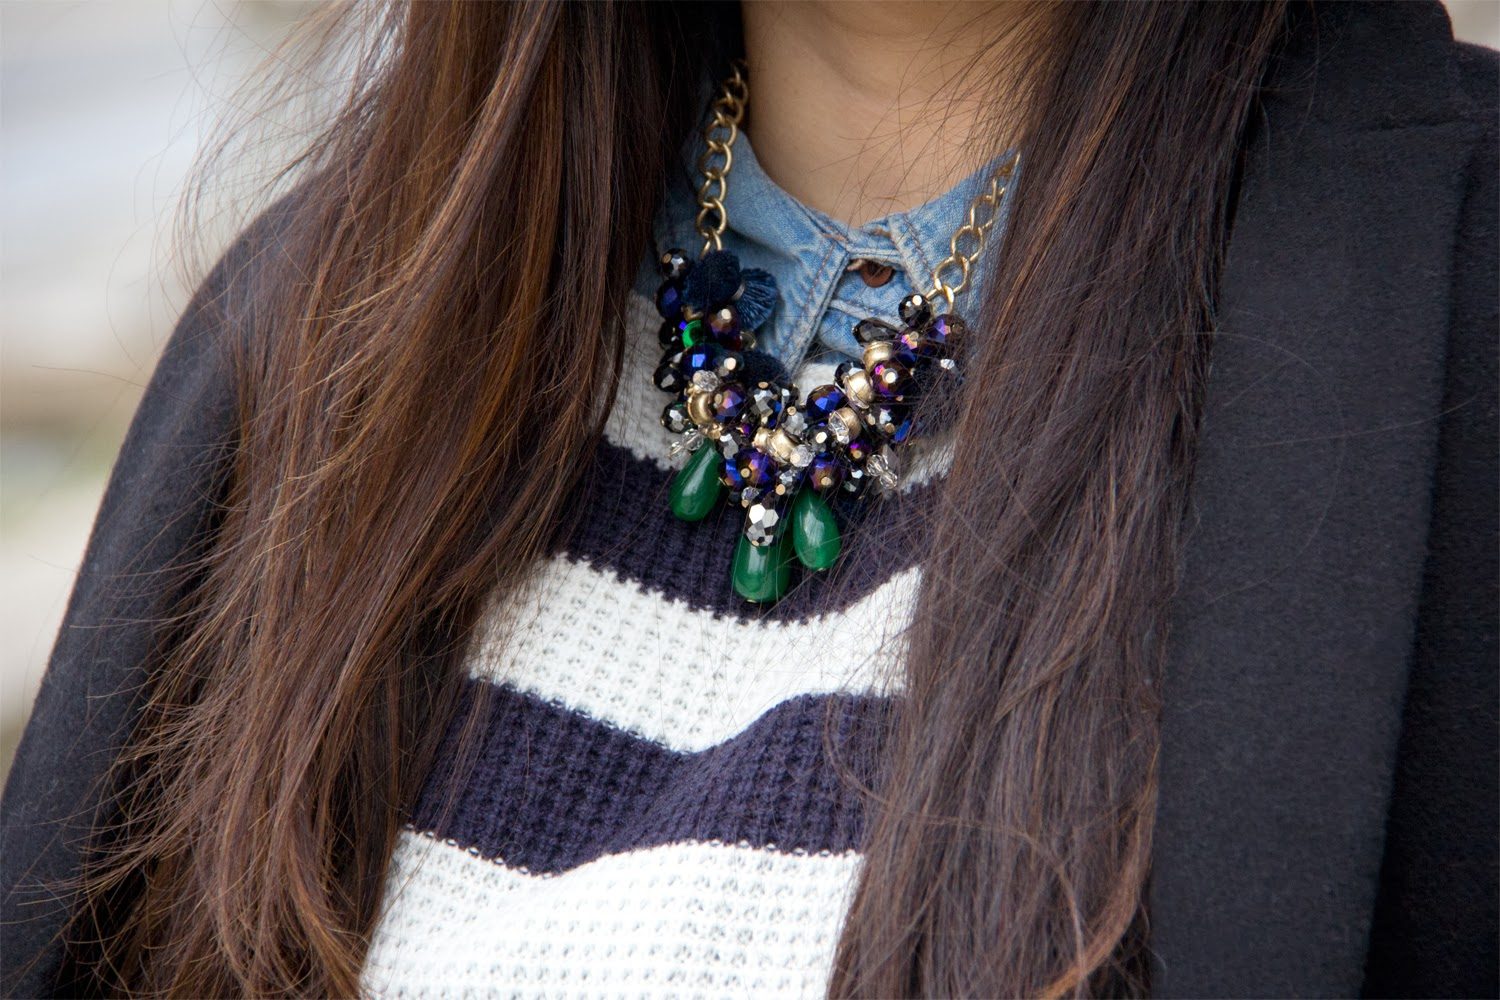 ClubMonaco-Necklace, Statement, Gap-Stripped-Sweater, HM-Denim-Shirt